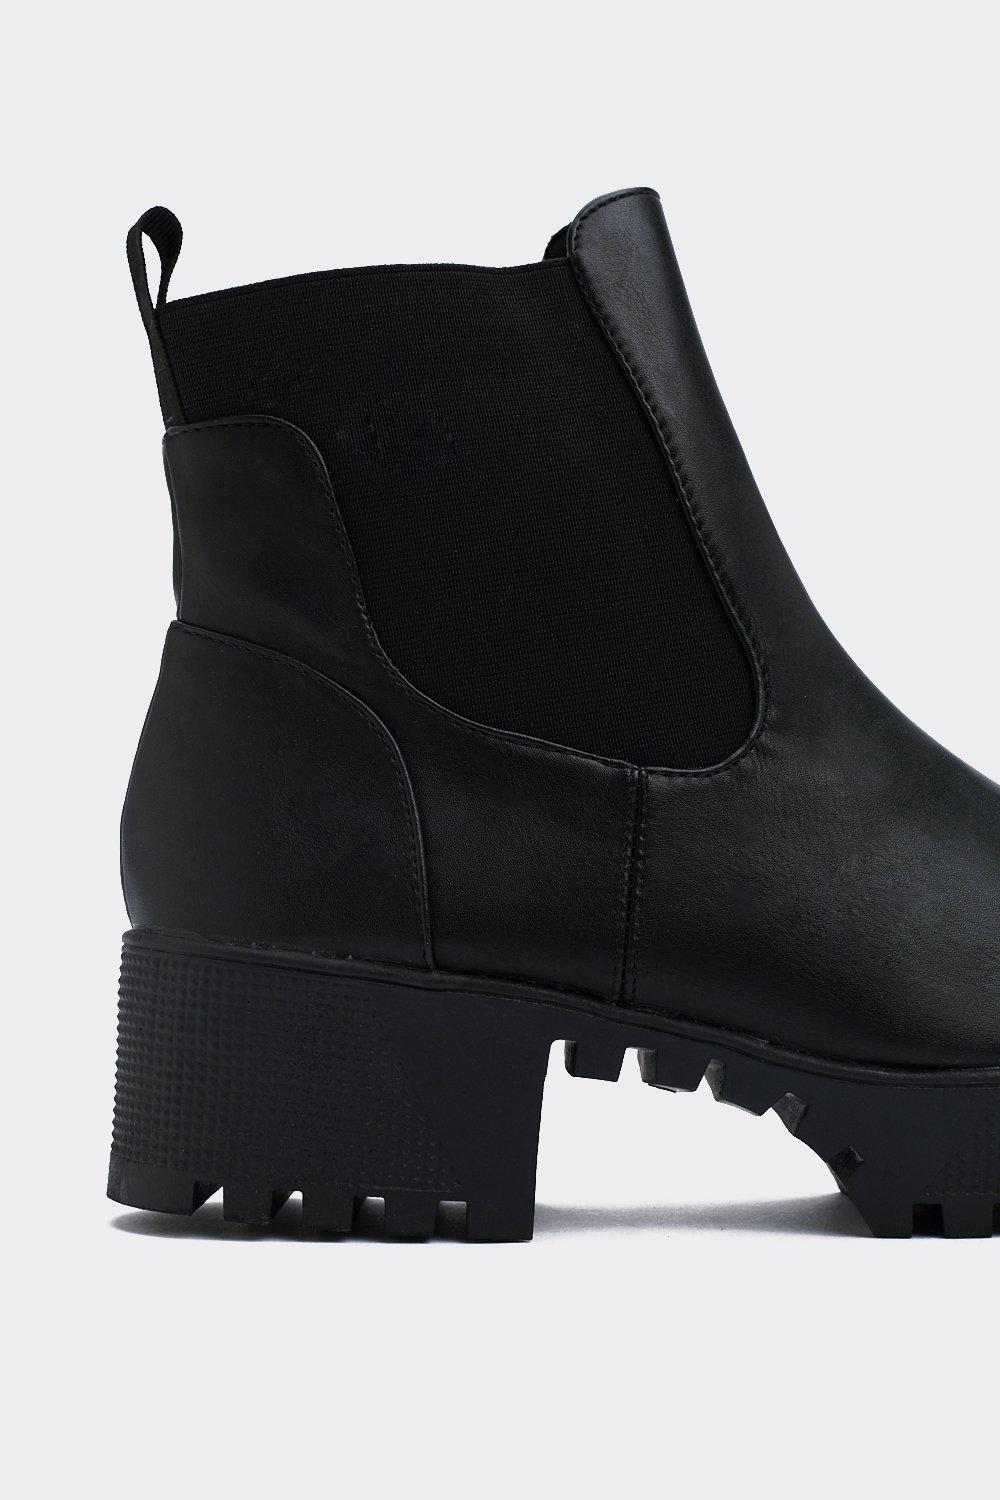 With The Pack Platform Chelsea Boot by Nasty Gal